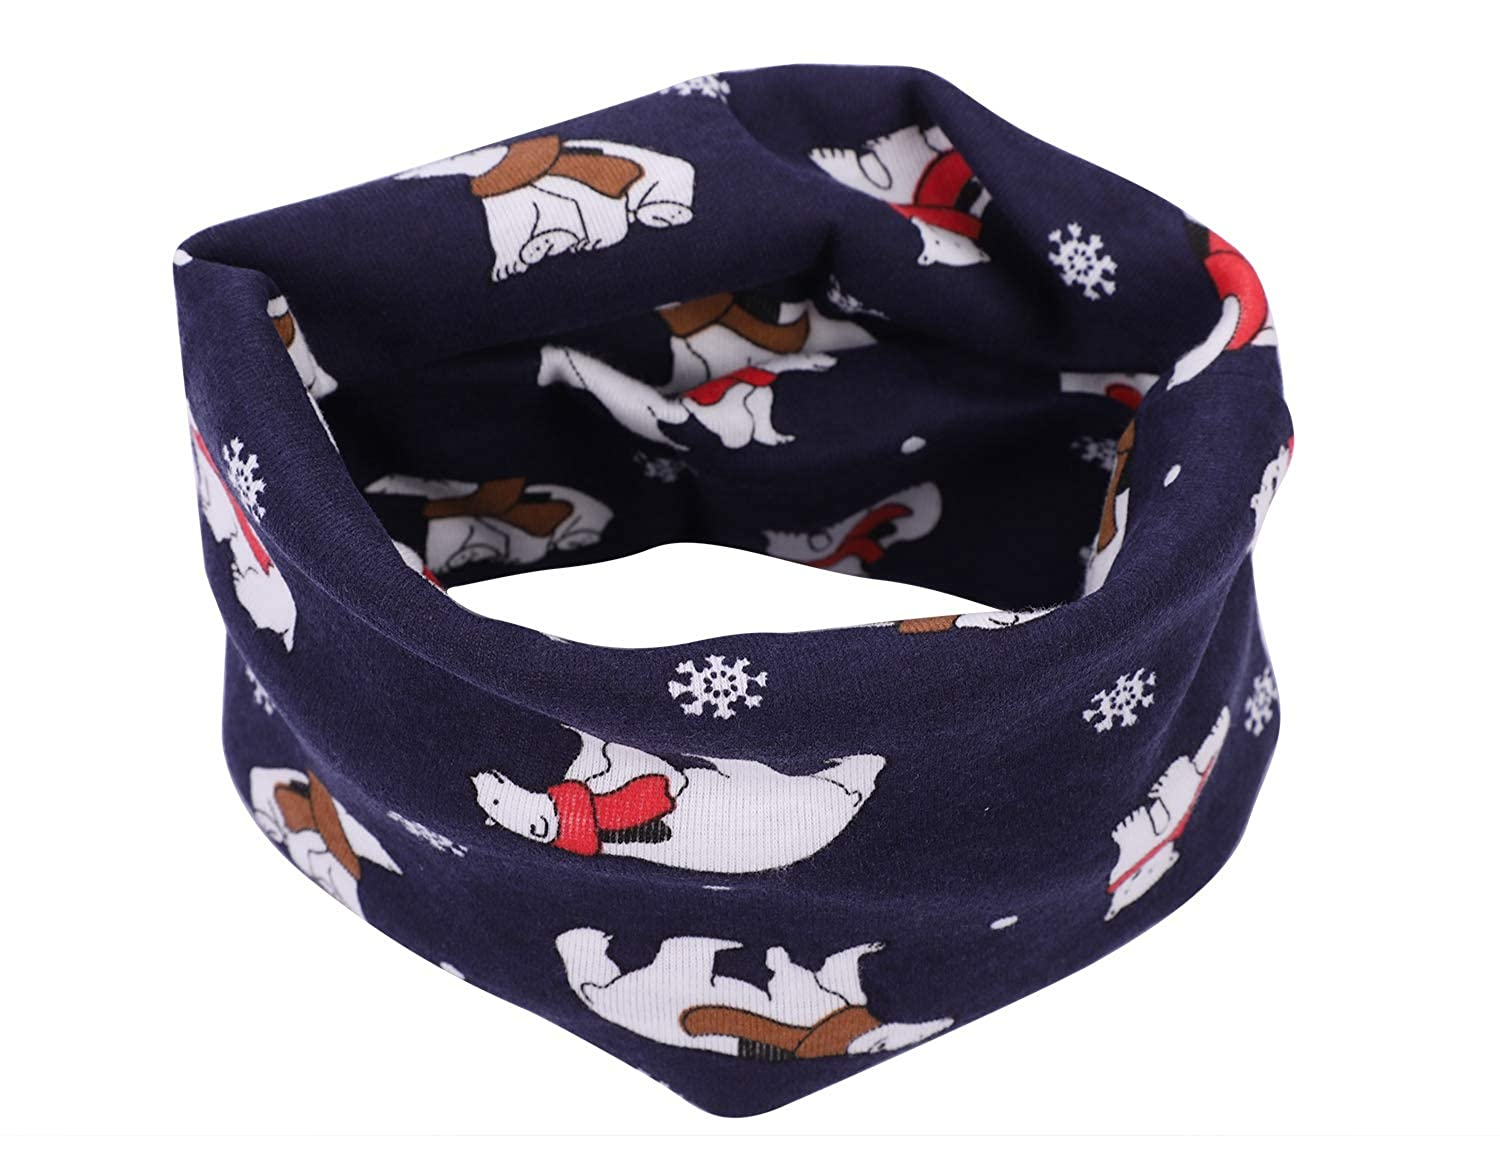 Kids Toddler Cotton Neck Scarf Collar Scarf Snood Scarf Neck Warmer Wrap Multipurpose Neckerchief Circle Scarf Beanie Hat Bandana Wind Mask with Star Pattern for Baby Girls or Boys 15 x 7inch